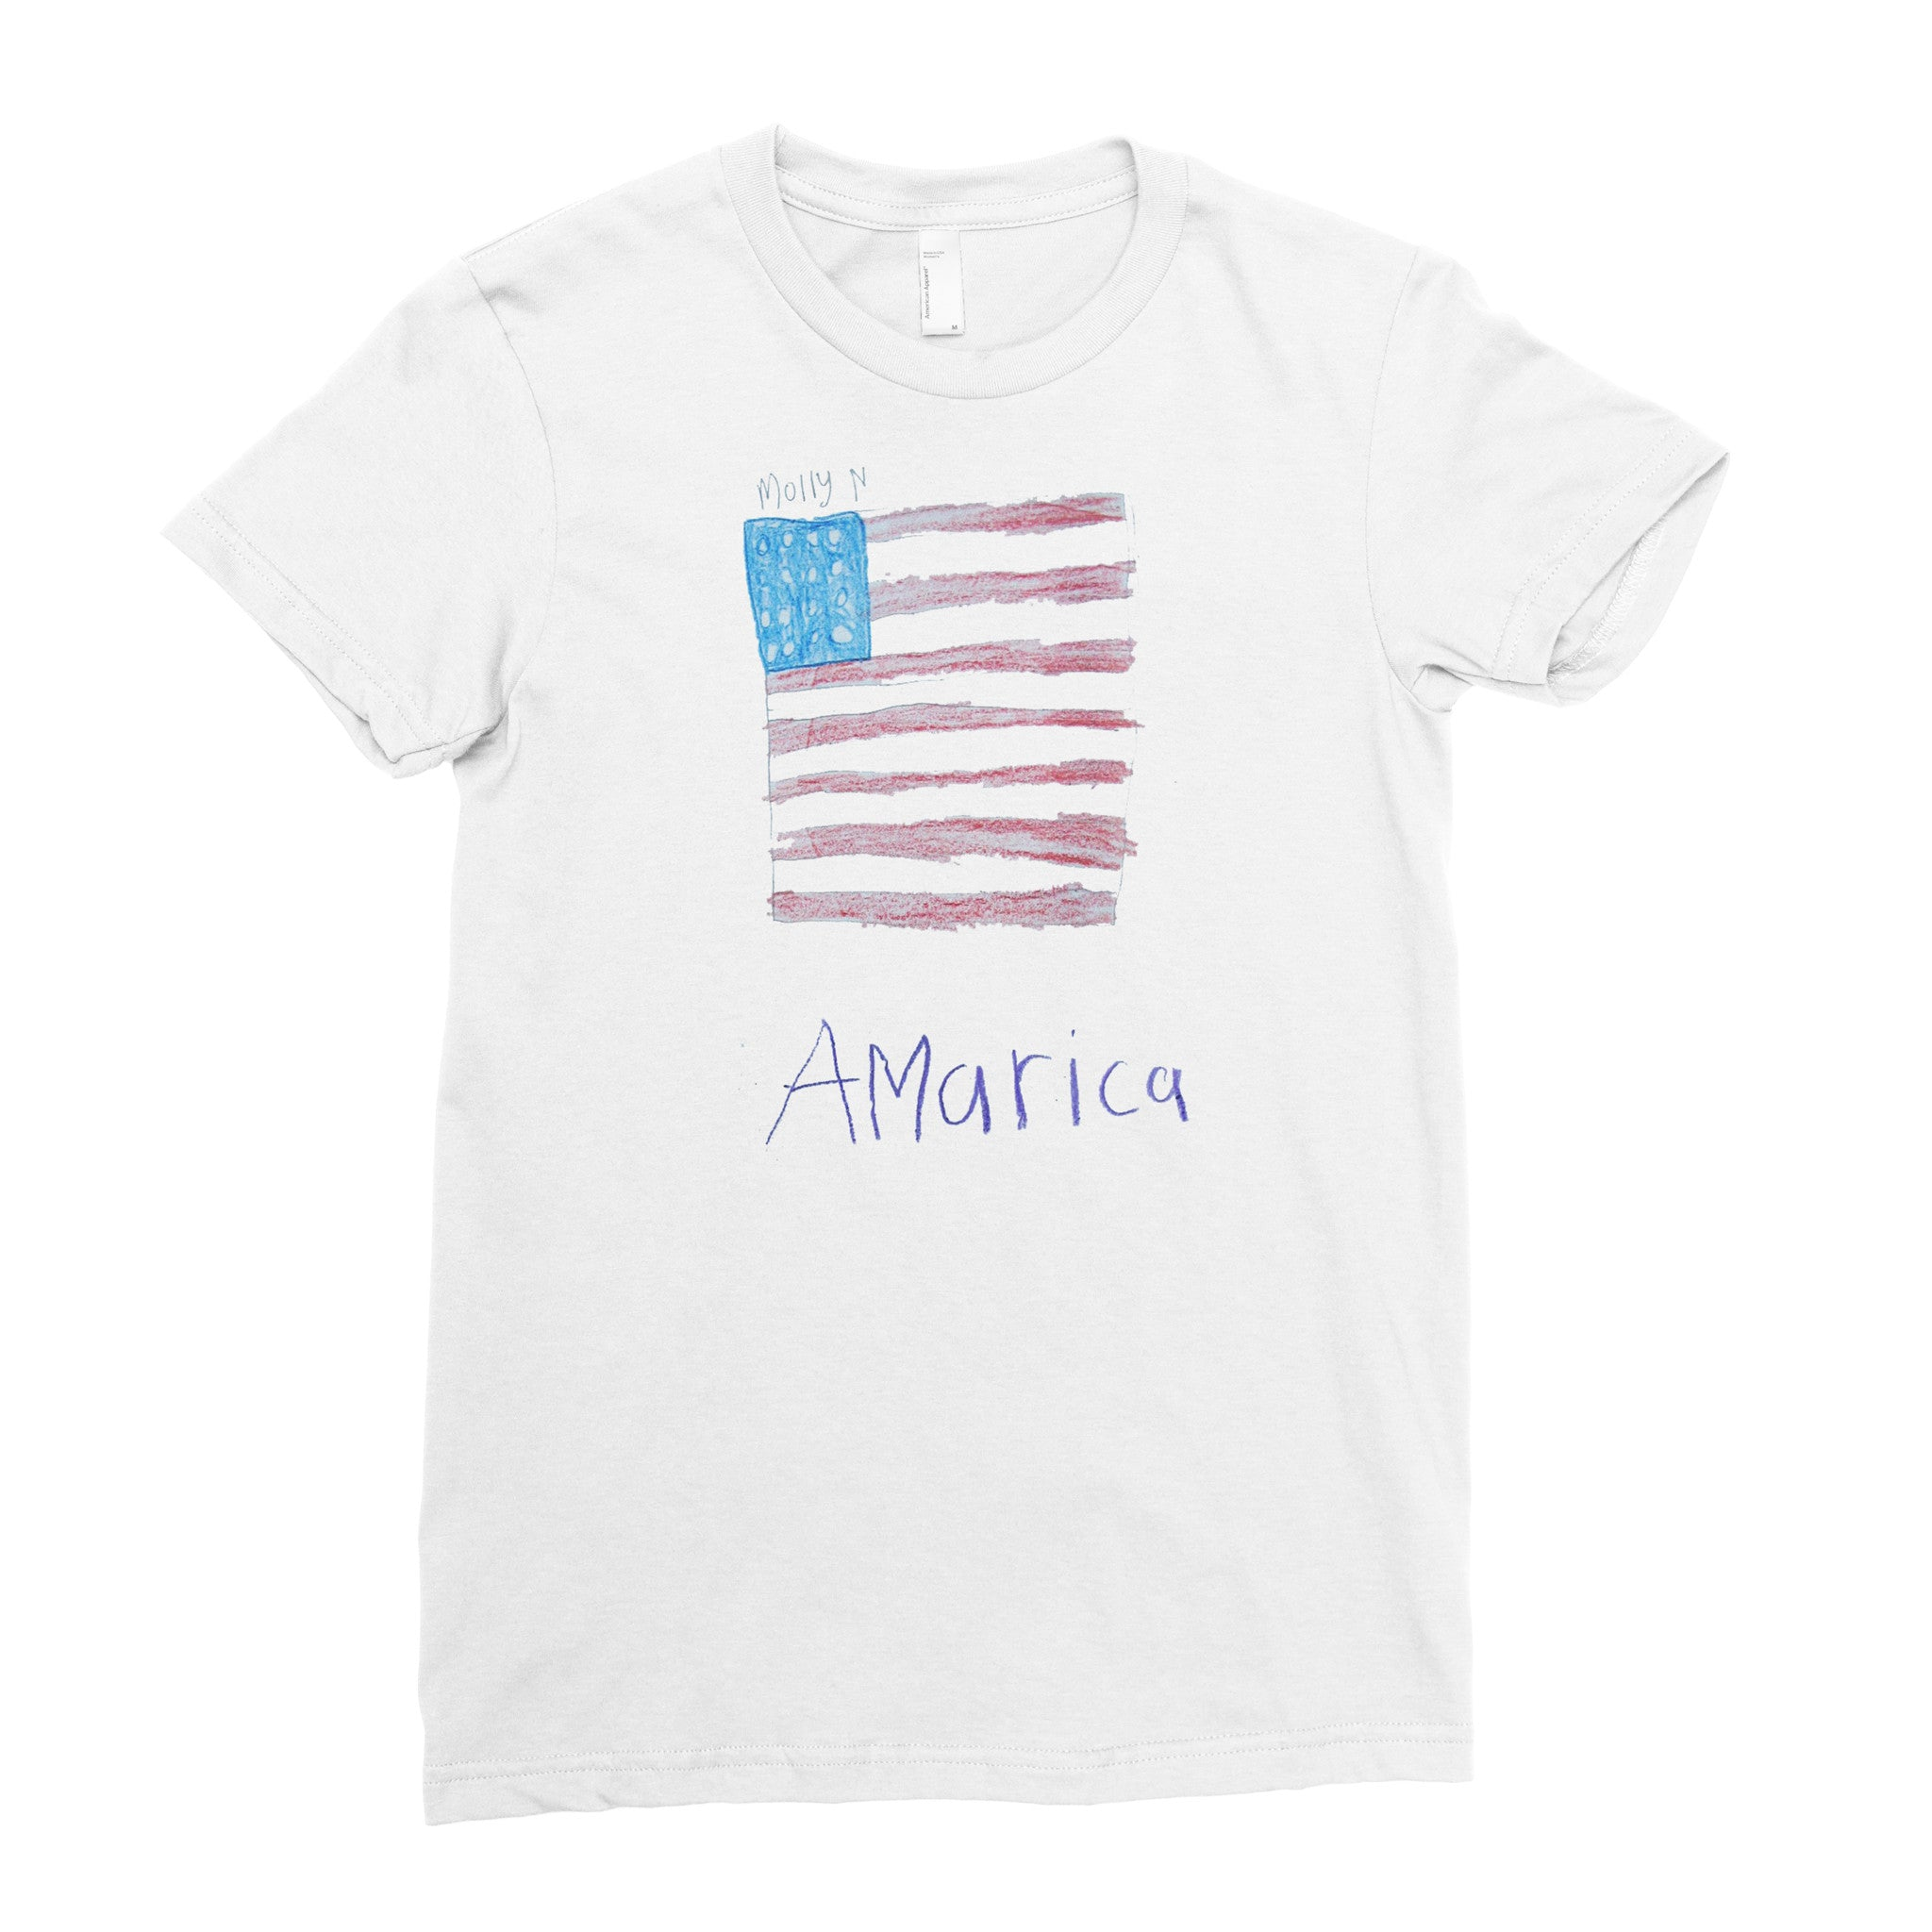 American Flag - Adult T-shirt - Rightside Shirts